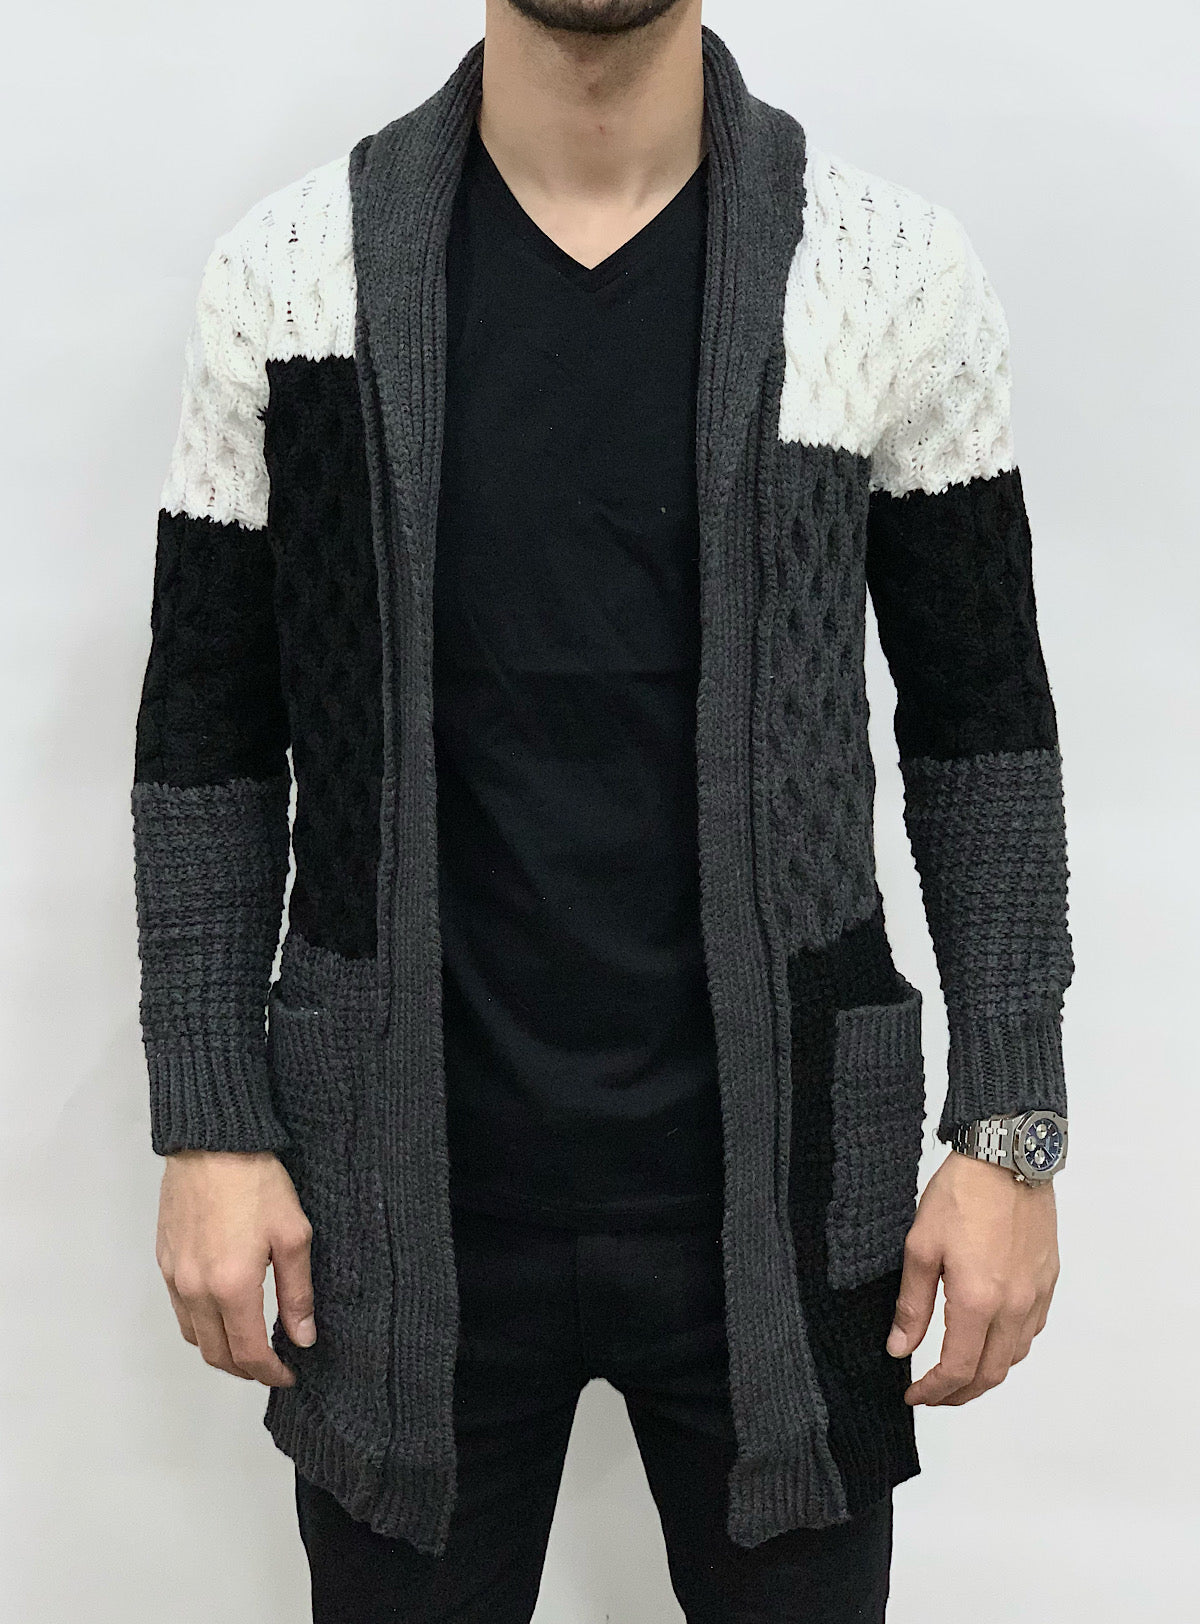 Buyer's Choice Sweater - Cardigan - Grey With Black And White - KA2045